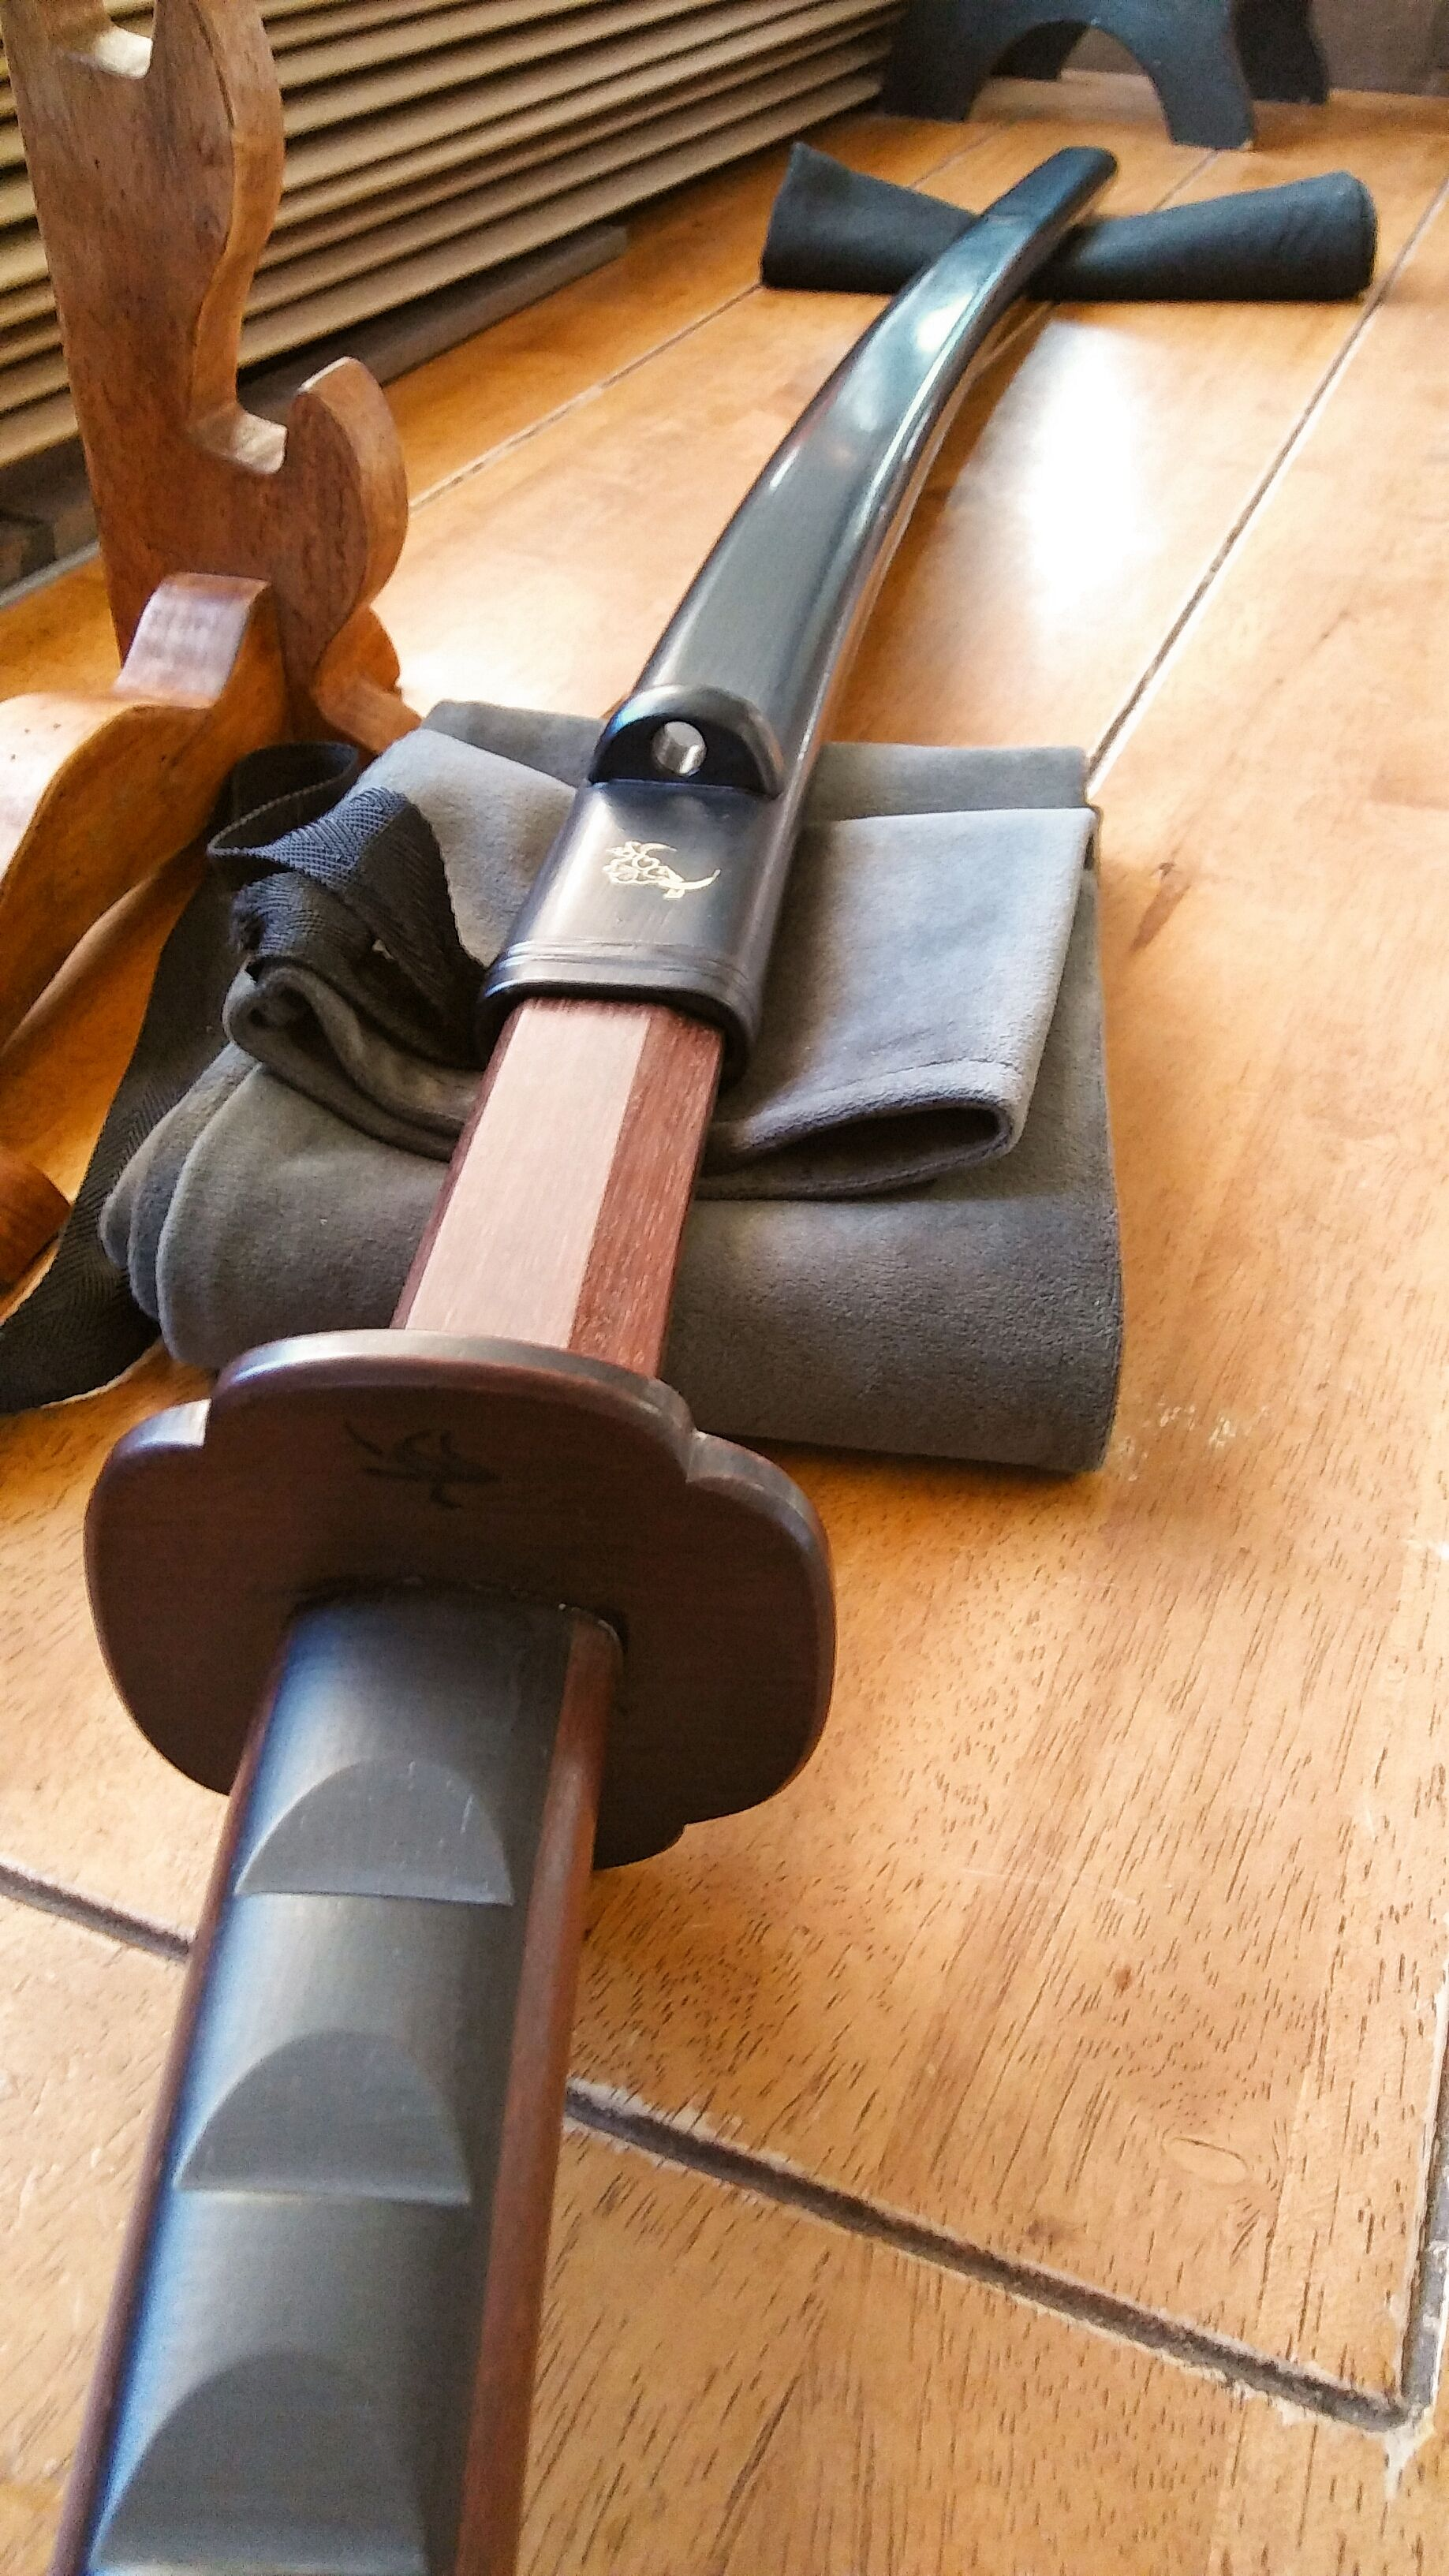 Benchmade hardwood bokken with fitted saya. (With images